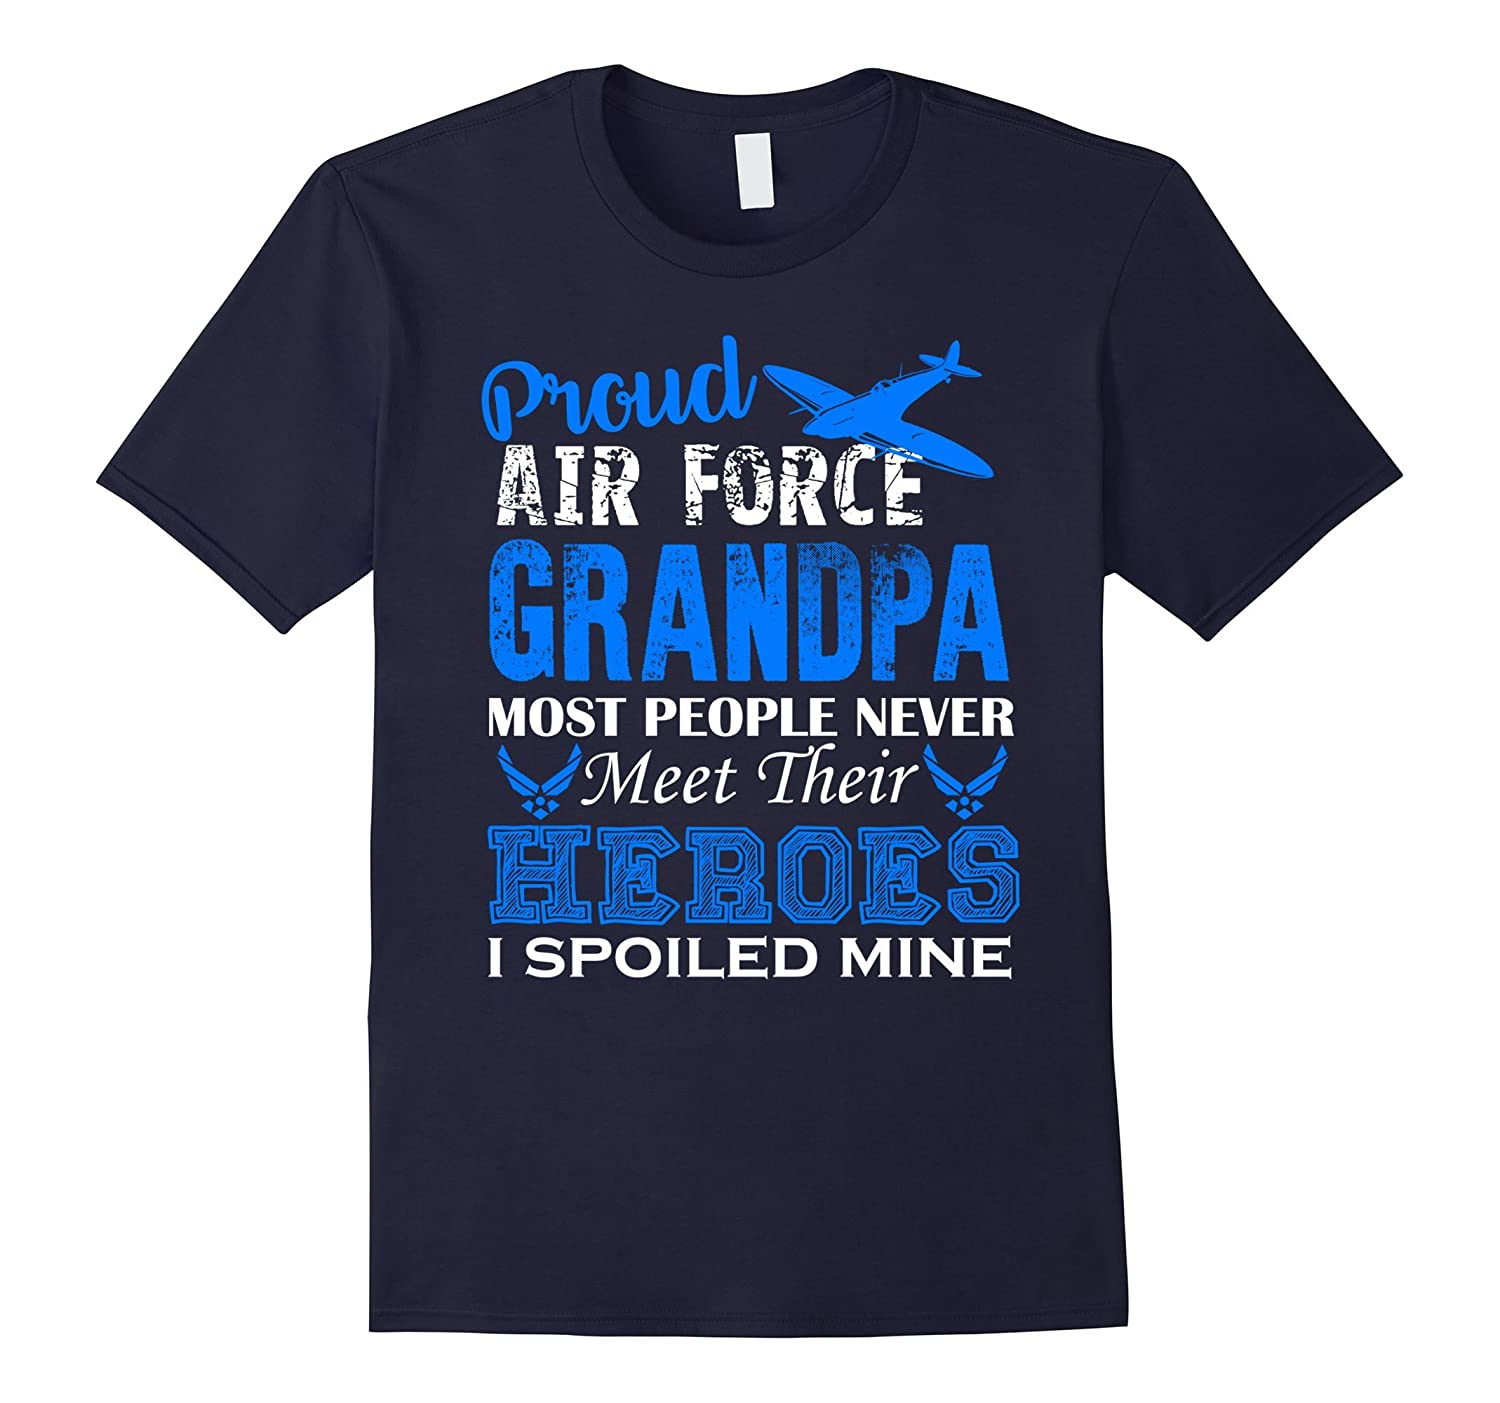 Air Force Grandpa Shirt - Proud Air Force Grandpa Shirts-BN